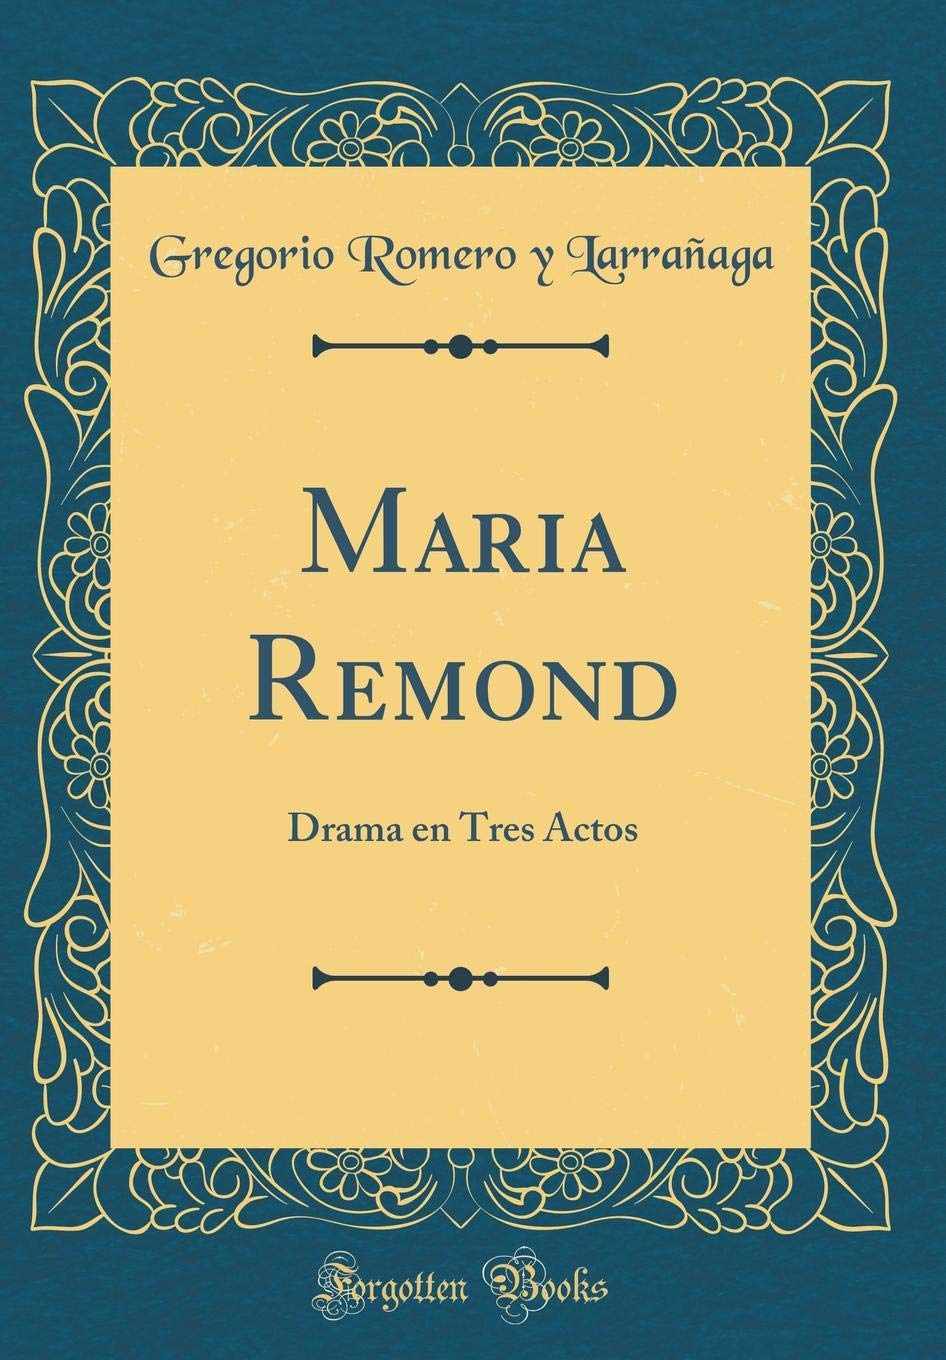 Maria Remond: Drama en Tres Actos (Classic Reprint) (Spanish Edition) (Spanish) Hardcover – January 22, 2019